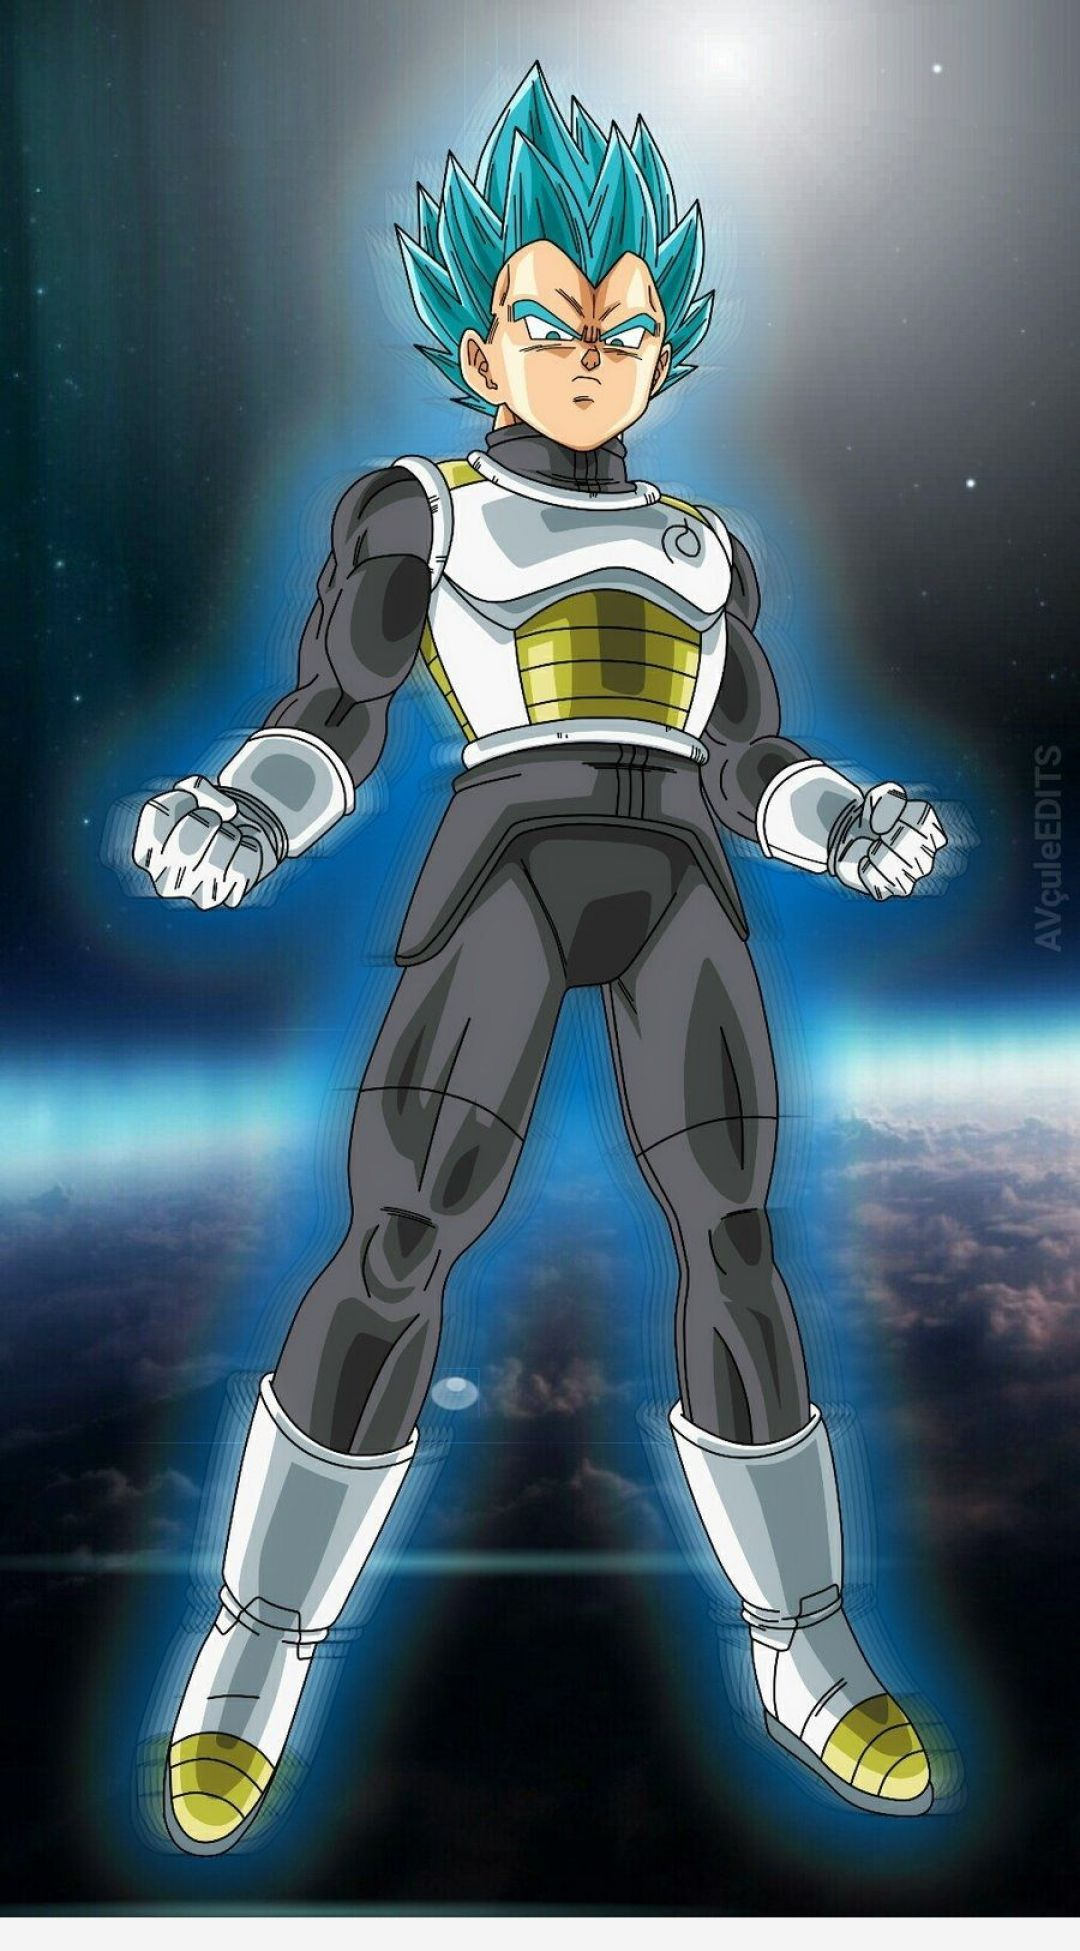 Vegeta Android Iphone Desktop Hd Backgrounds Wallpapers 1080p 4k 107367 Hdwallpapers Android Dragon Ball Super Goku Dragon Ball Dragon Ball Super